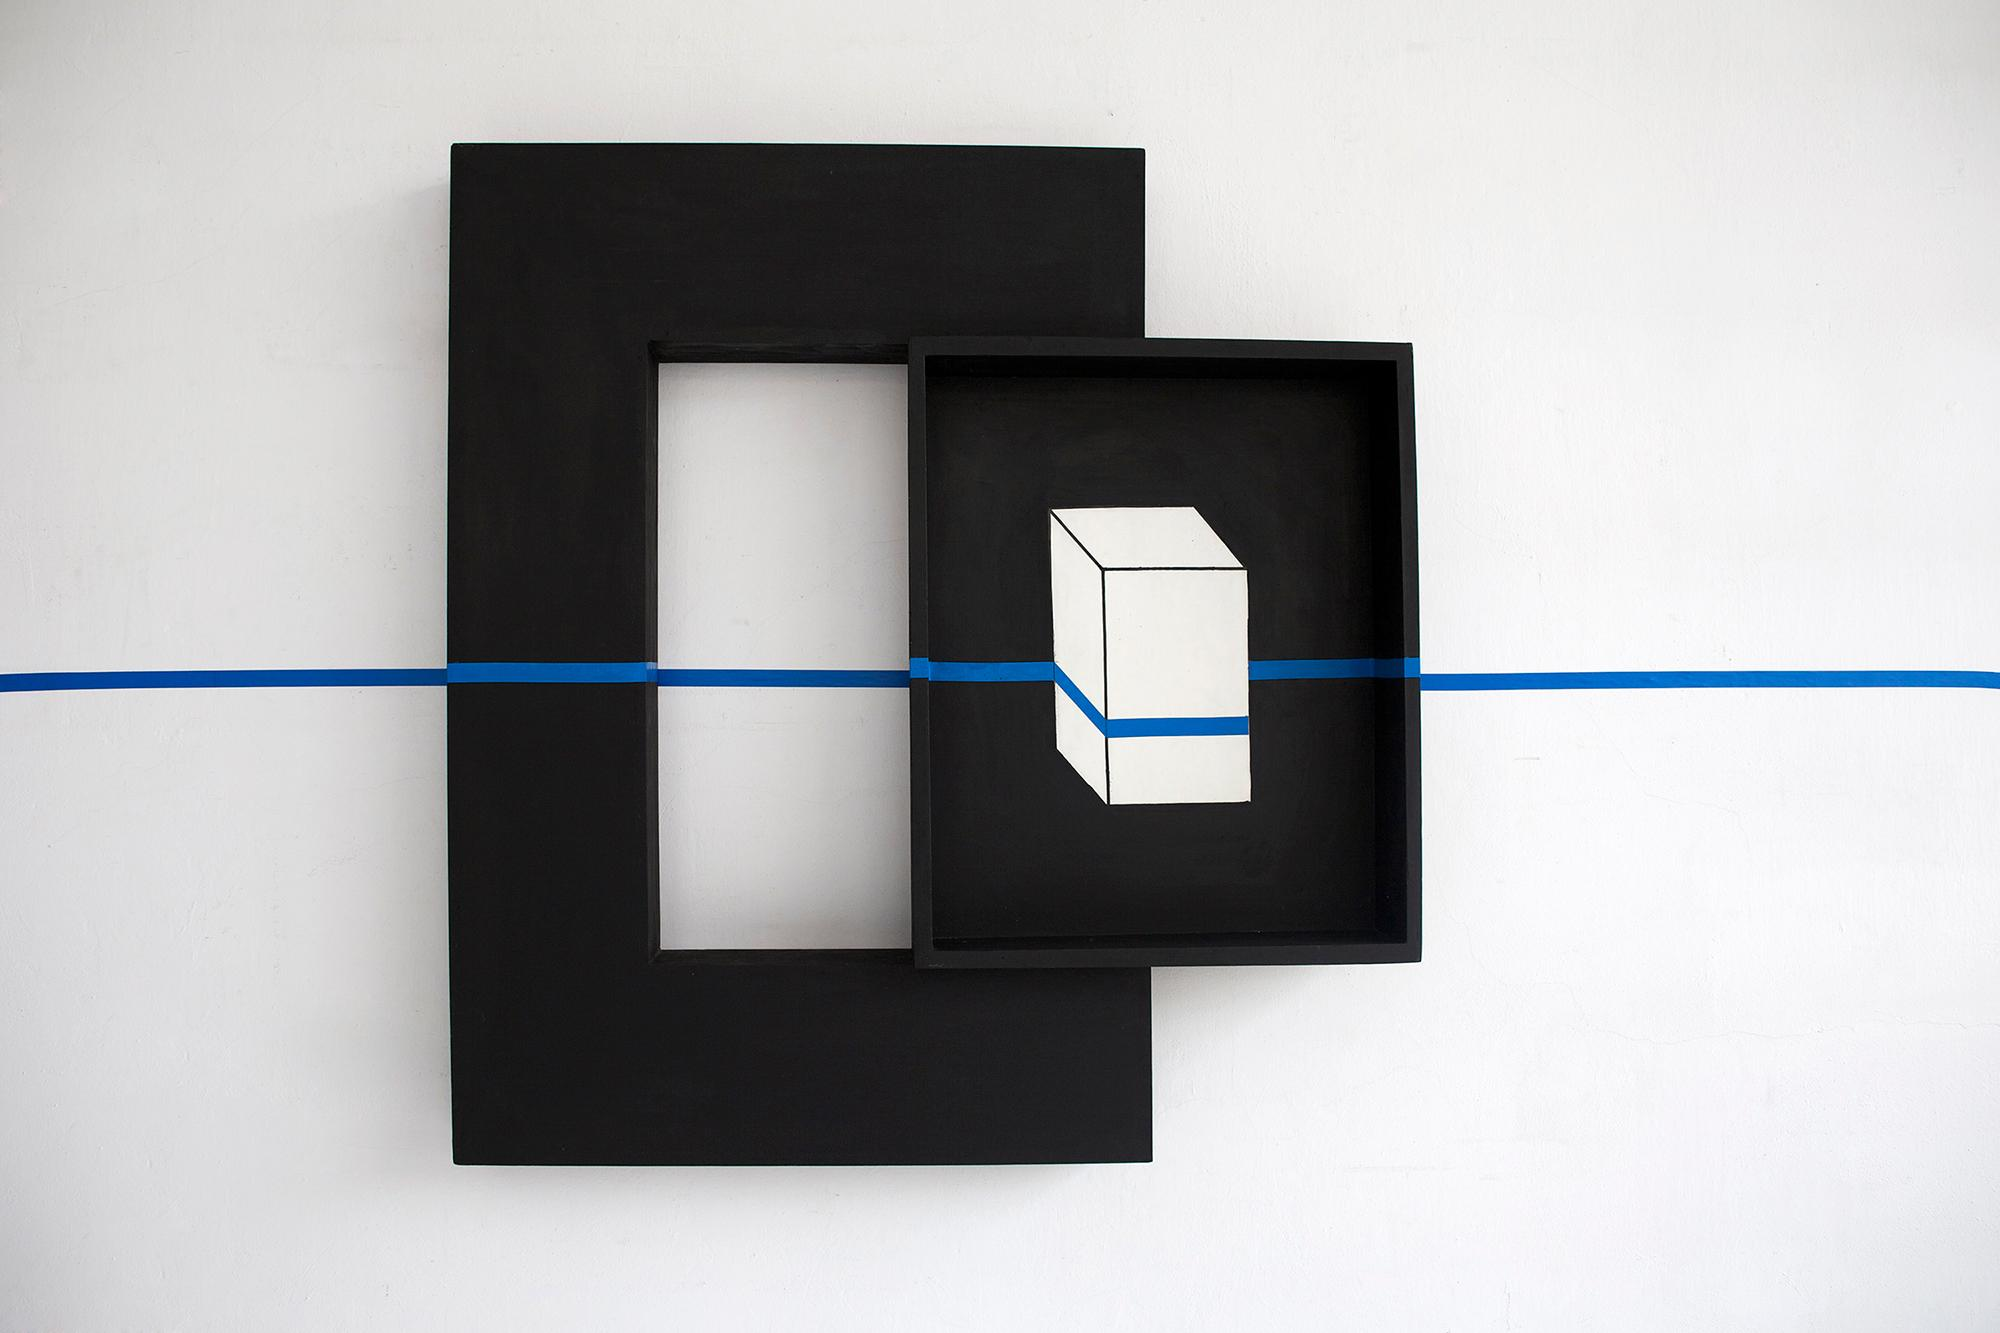 A black box containing an image of white box is mounted on the side of a thick black frame. The entire piece is intersected by a horizontal blue line, which appears to be painter's tape.